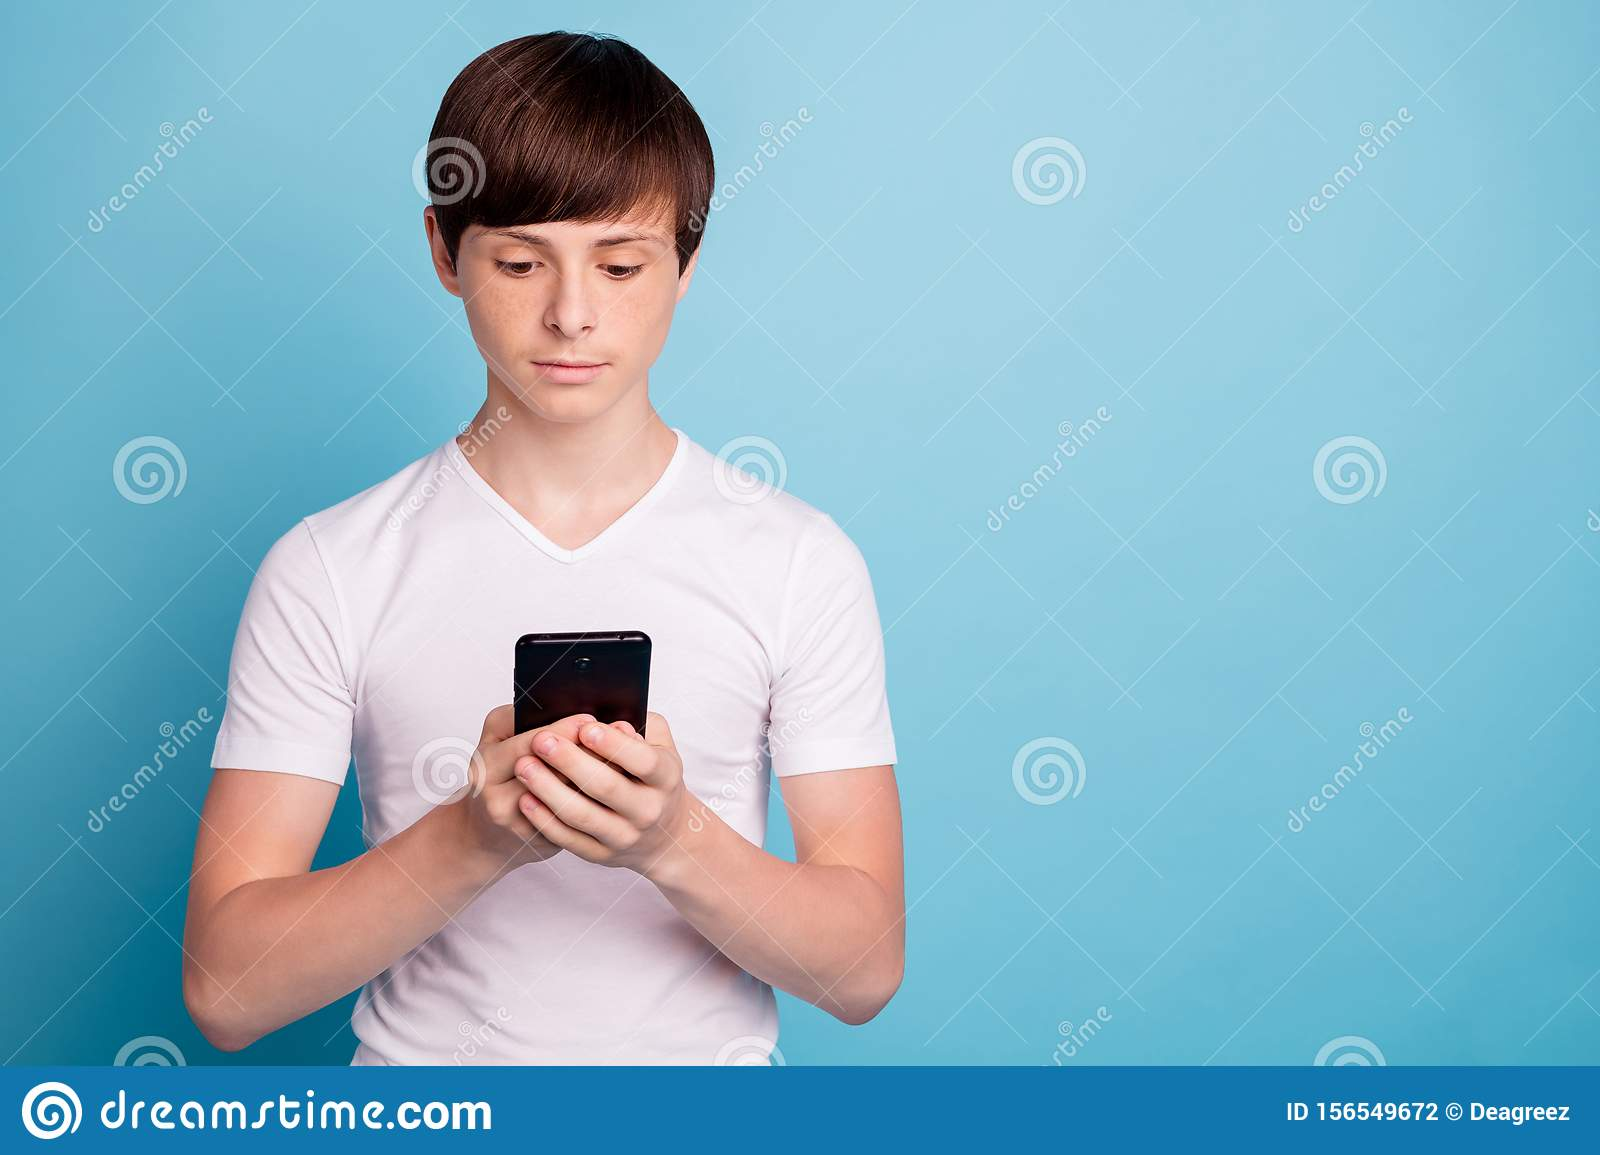 Photo of calm boyfriend browsing through his phone in search of something special while isolated with blue background